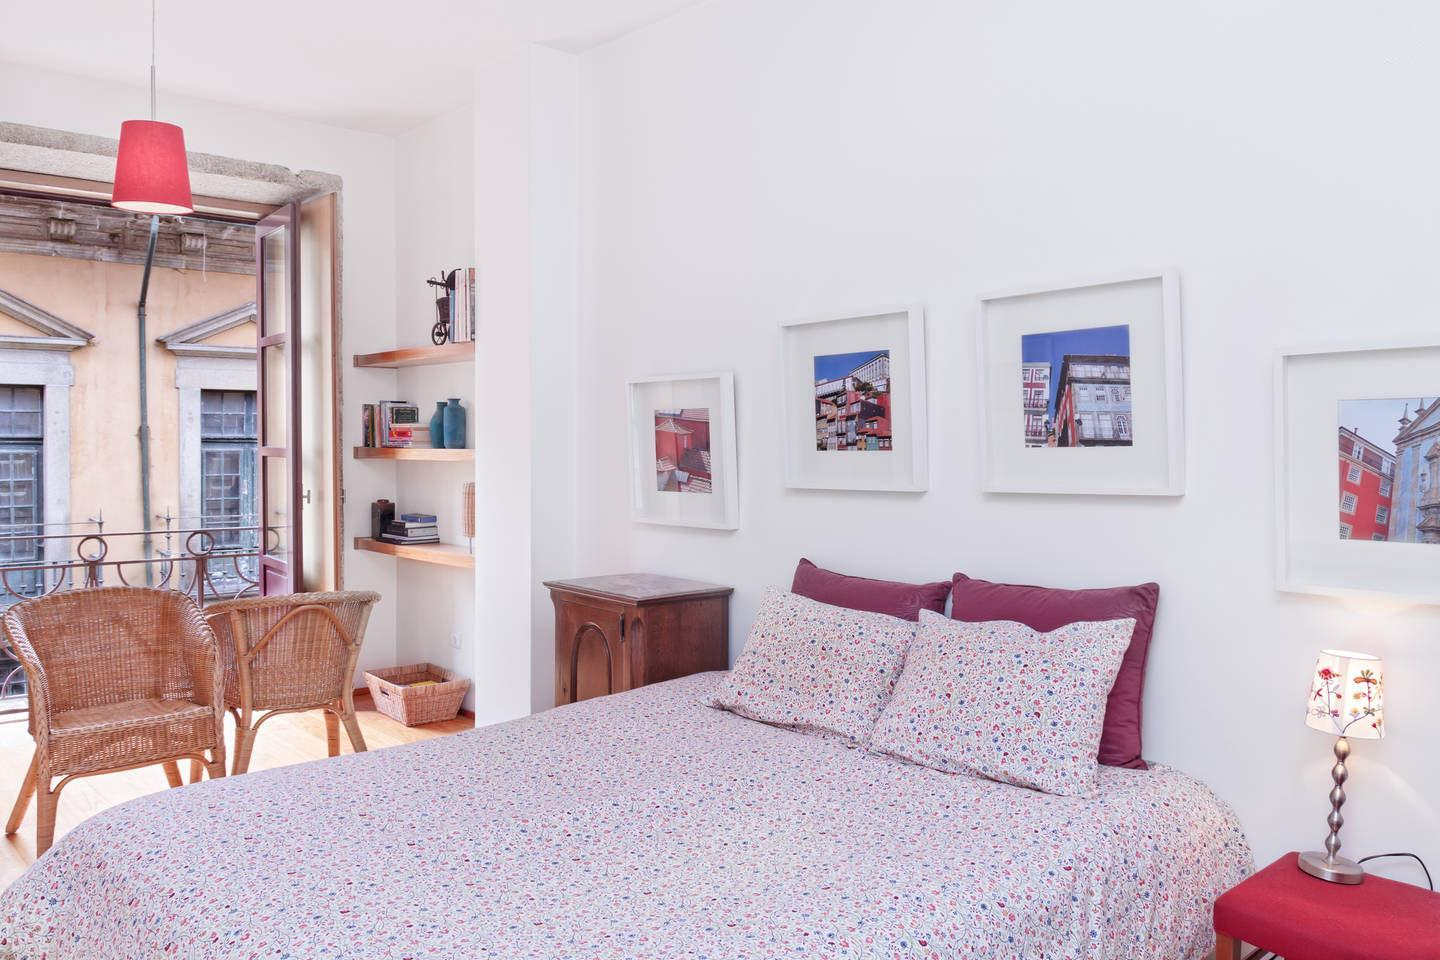 Romantic Apartment At Downtown   Flowerstreet54